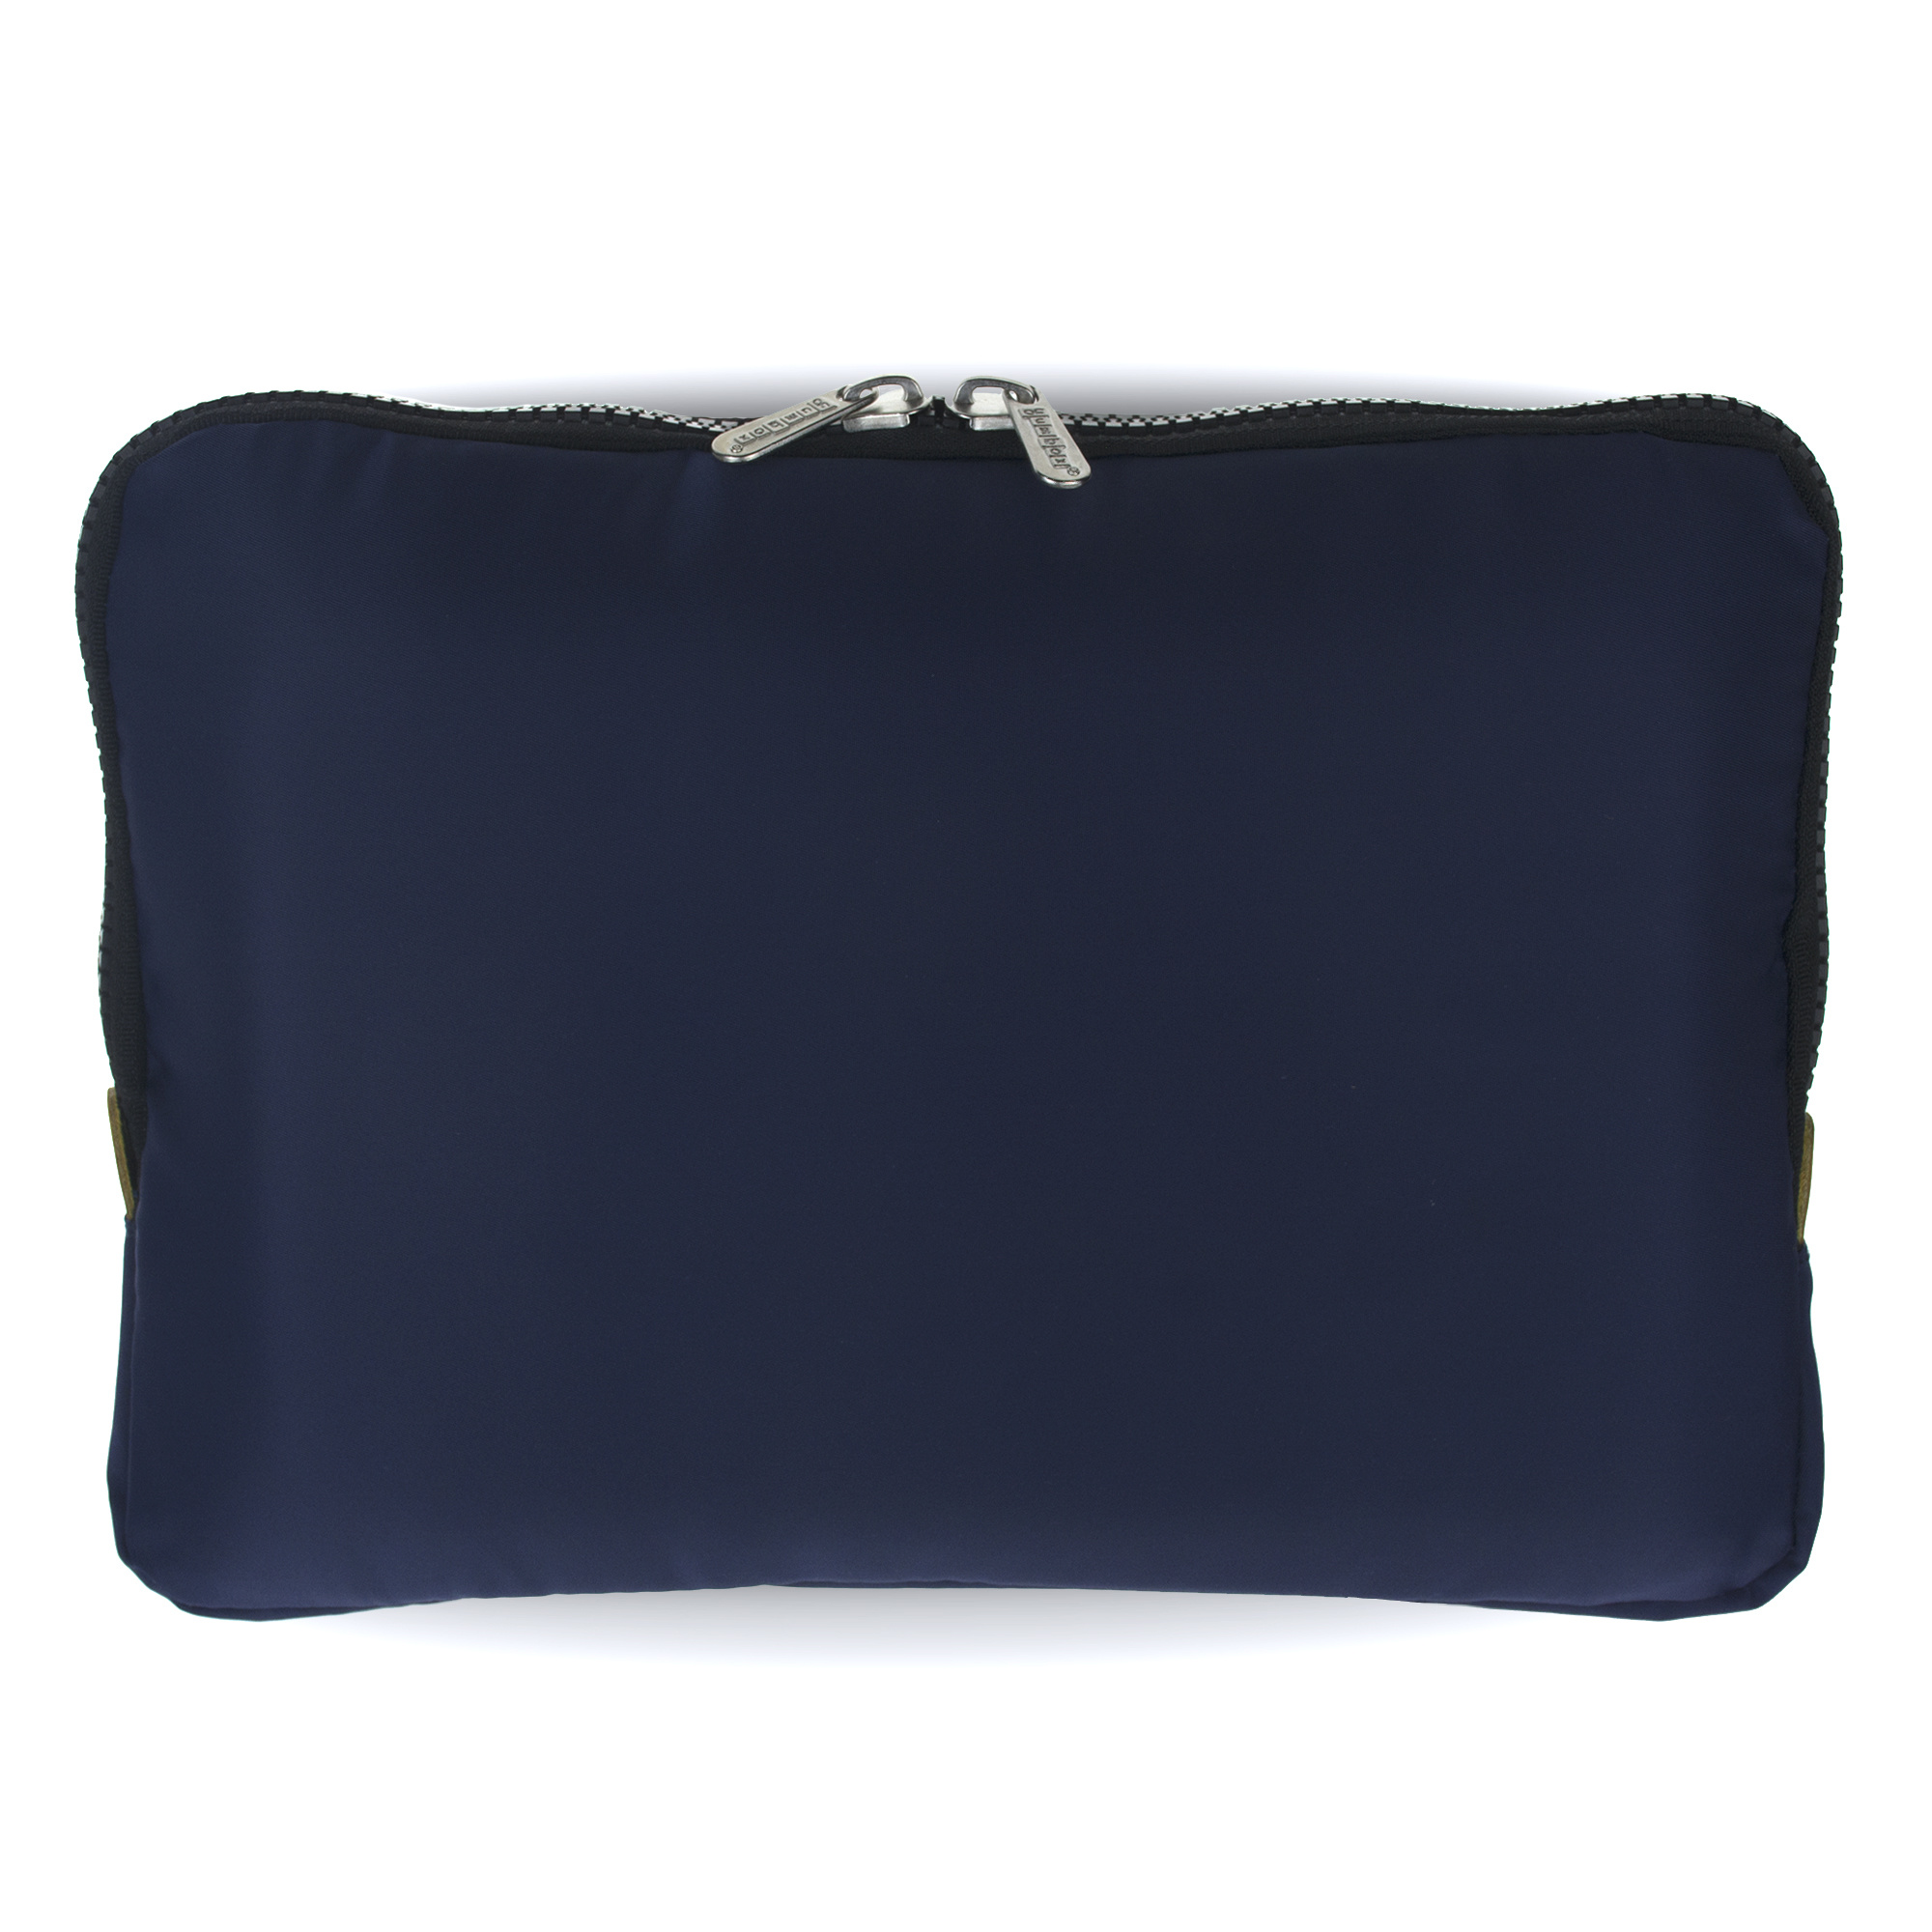 Yumbox Poche Navy Insulating sleeve-1